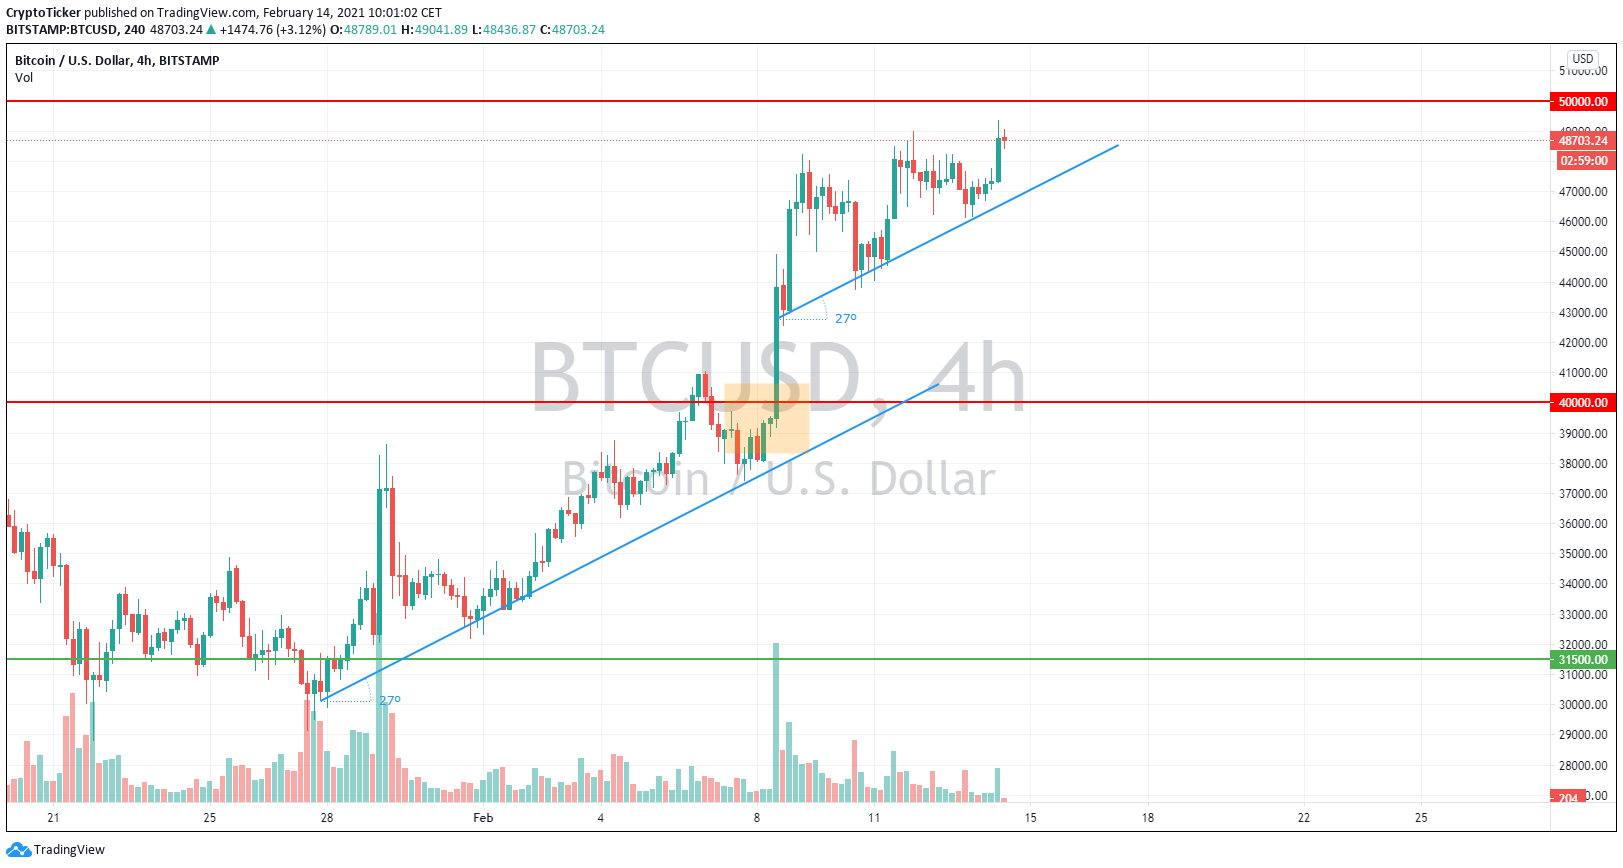 BTC/USD 4-hour chart showing BTC's same uptrend momentum after the Tesla Buy